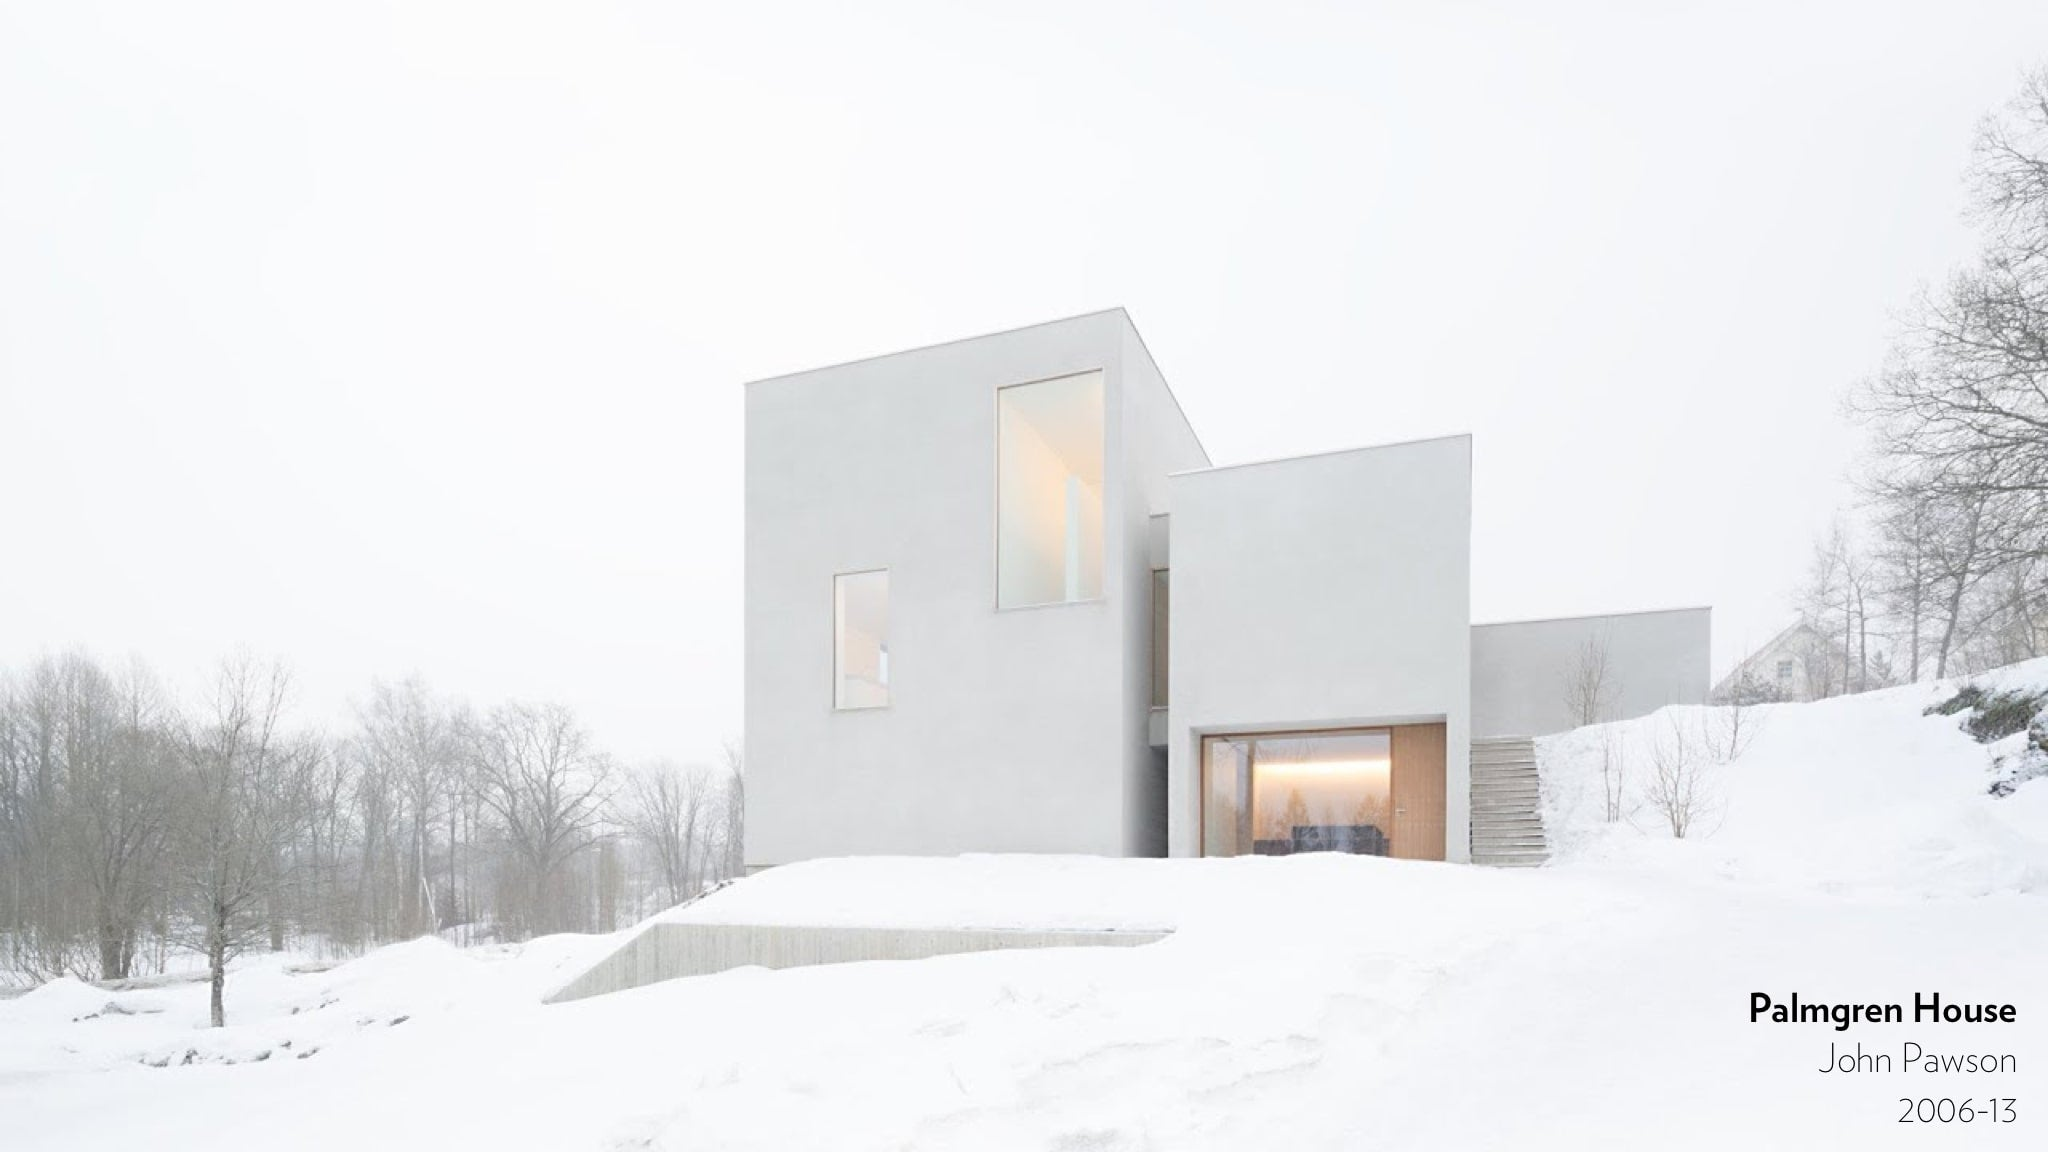 Palmgren House by John Pawson, 2006 to 2013.